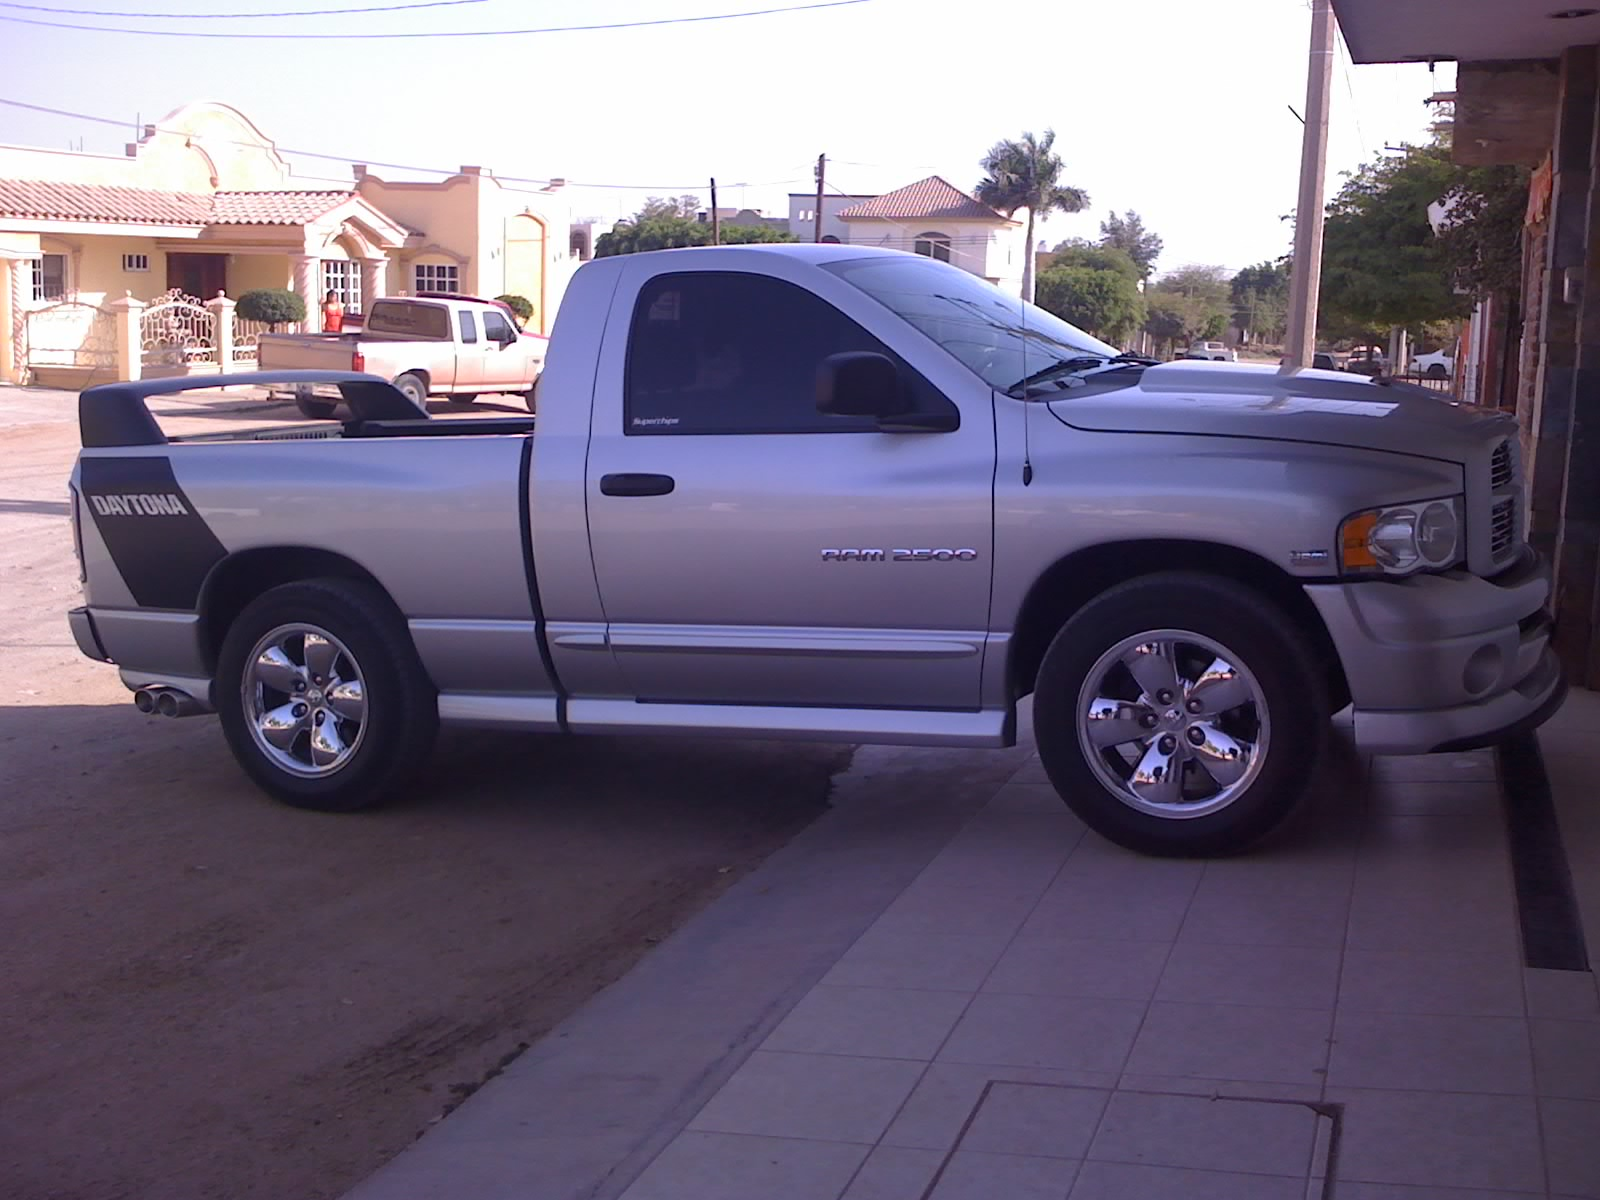 2005 Dodge Ram 1500 Ram Daytona Edition 1500 1/4 mile trap speeds 0 ...